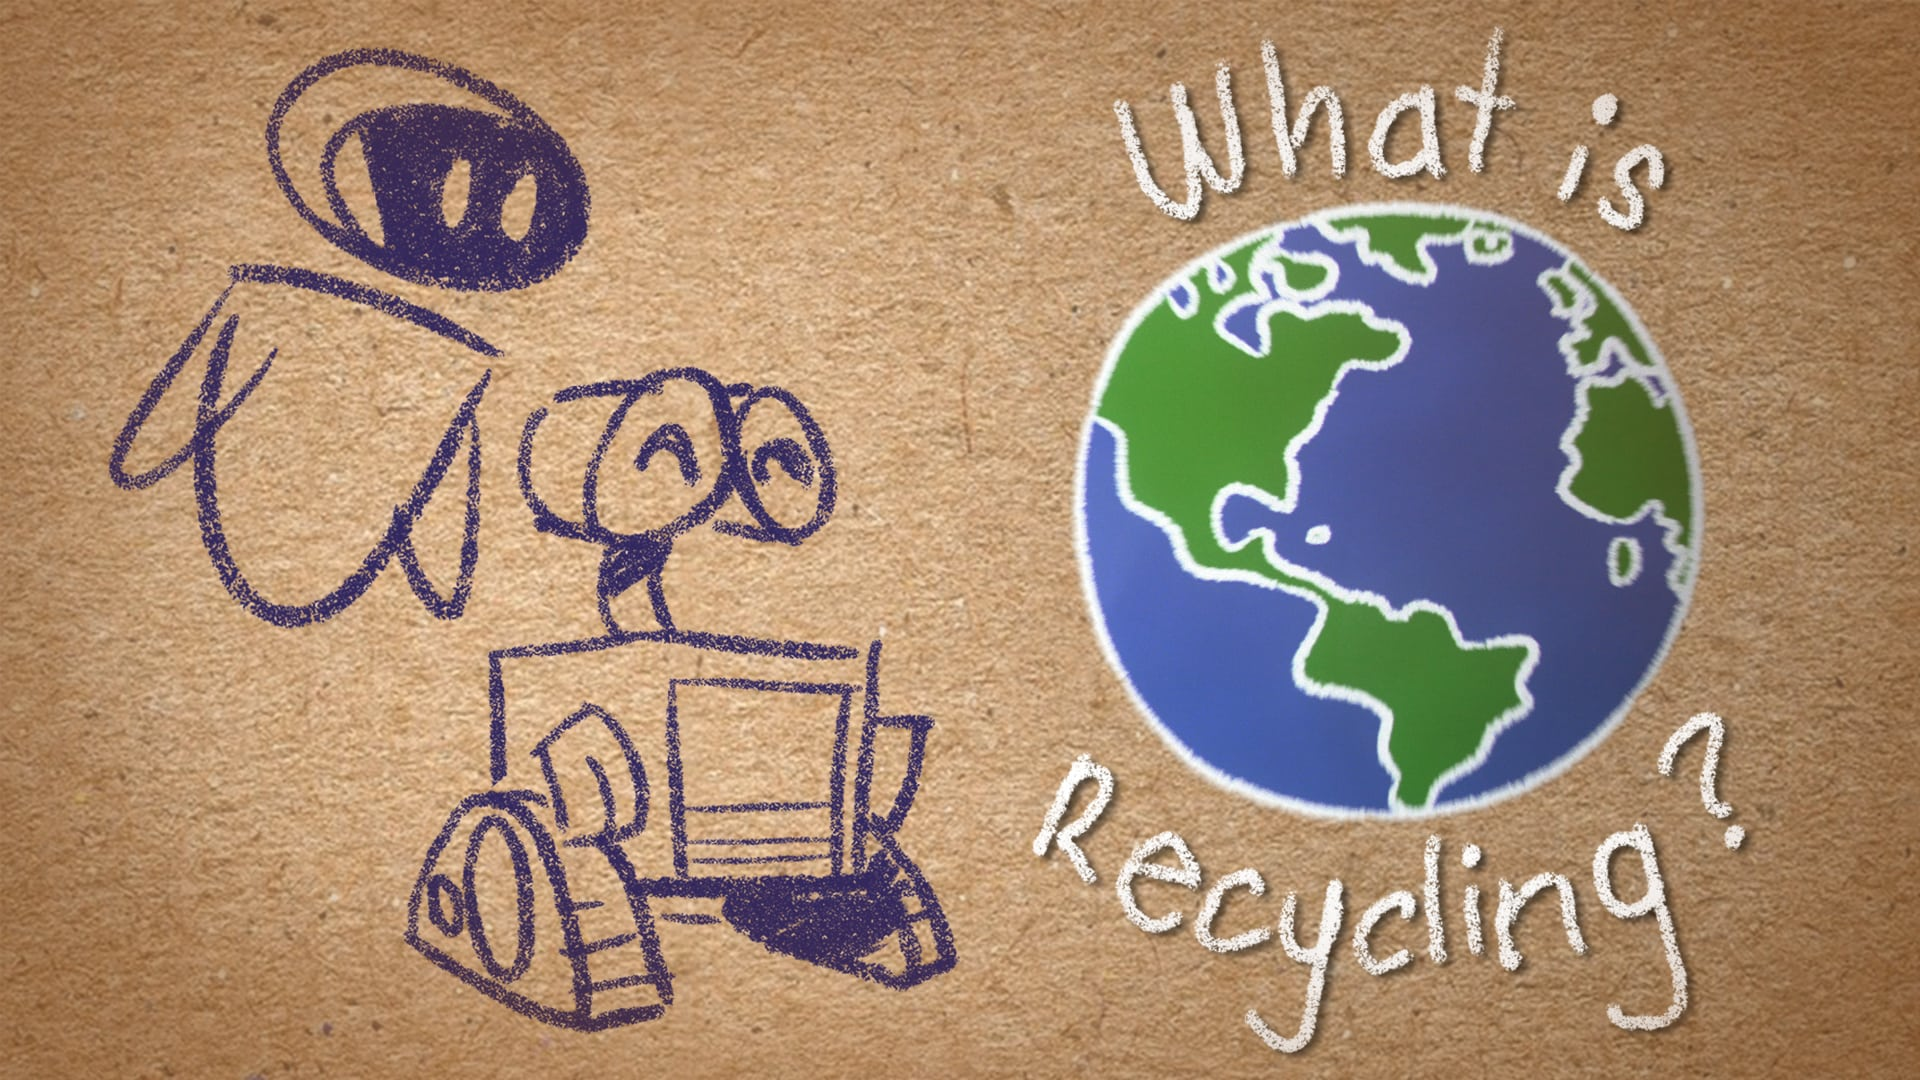 How to Recycle with WALL-E and Eve | Disney Family